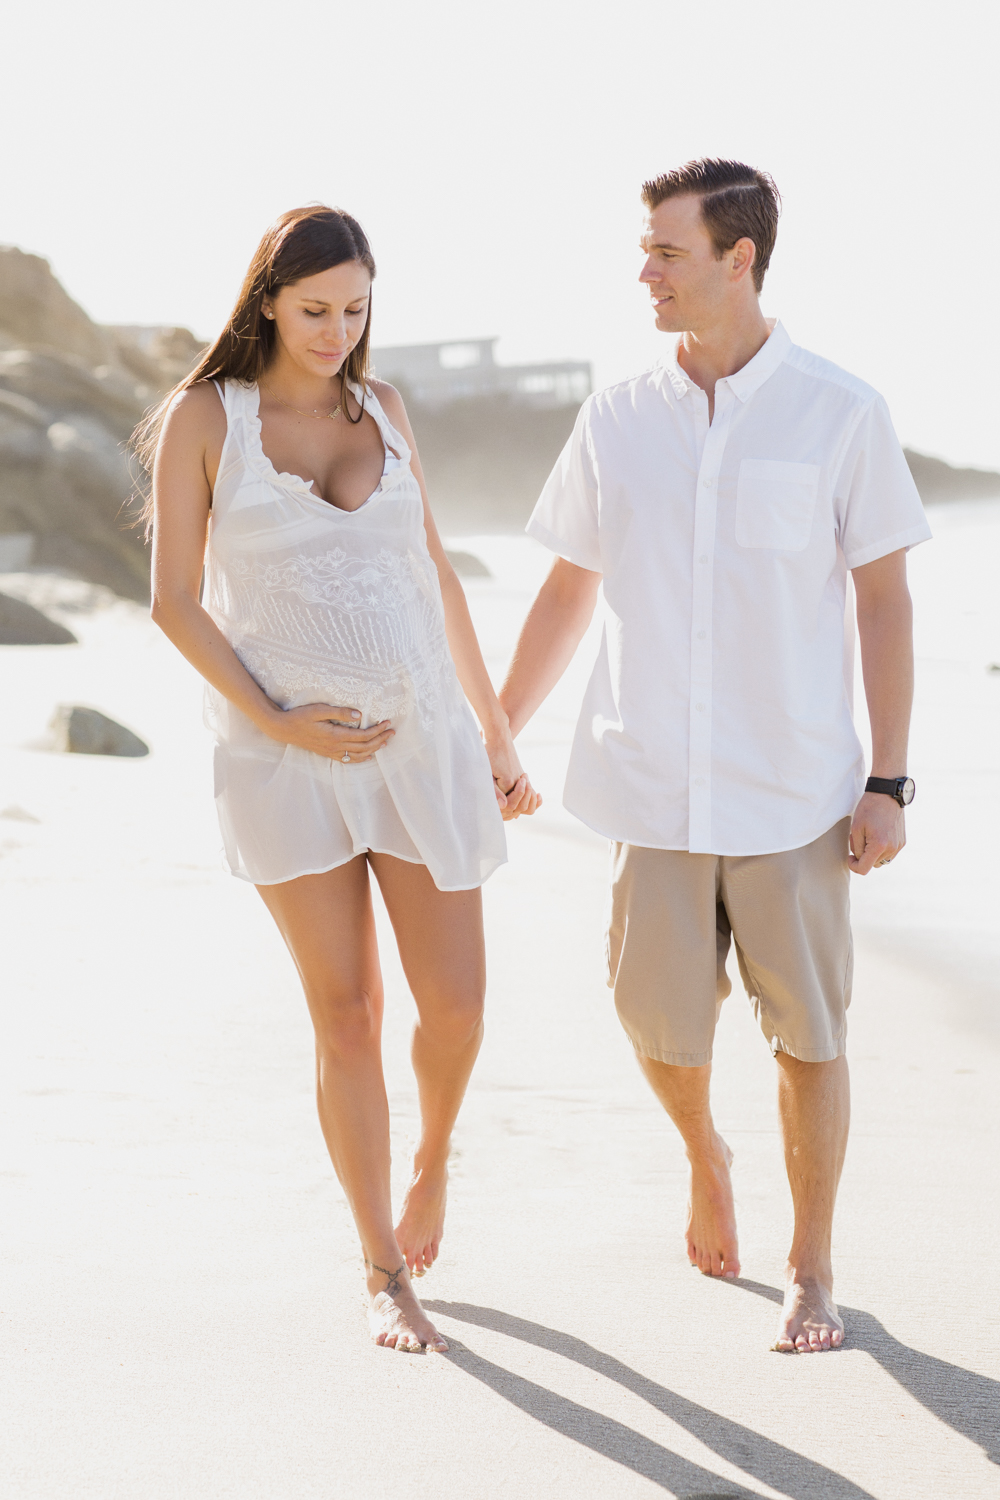 LagunaBeach_Family_MaternityShoot_SidneyKraemer_Low-62.jpg